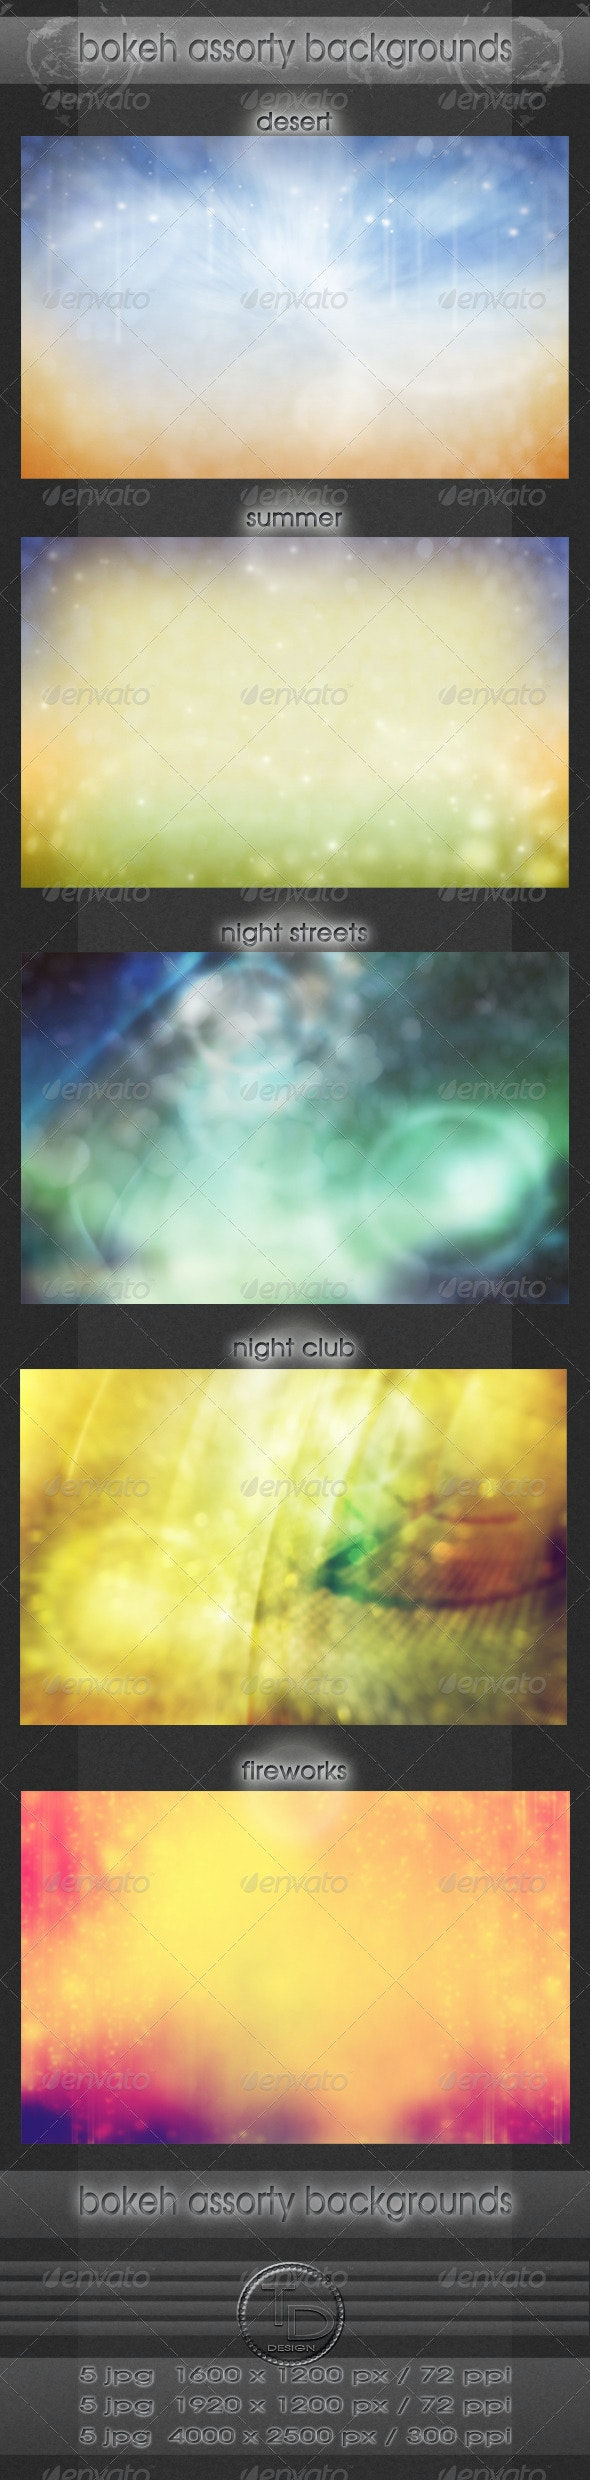 Bokeh Assorty Backgrounds - Abstract Backgrounds